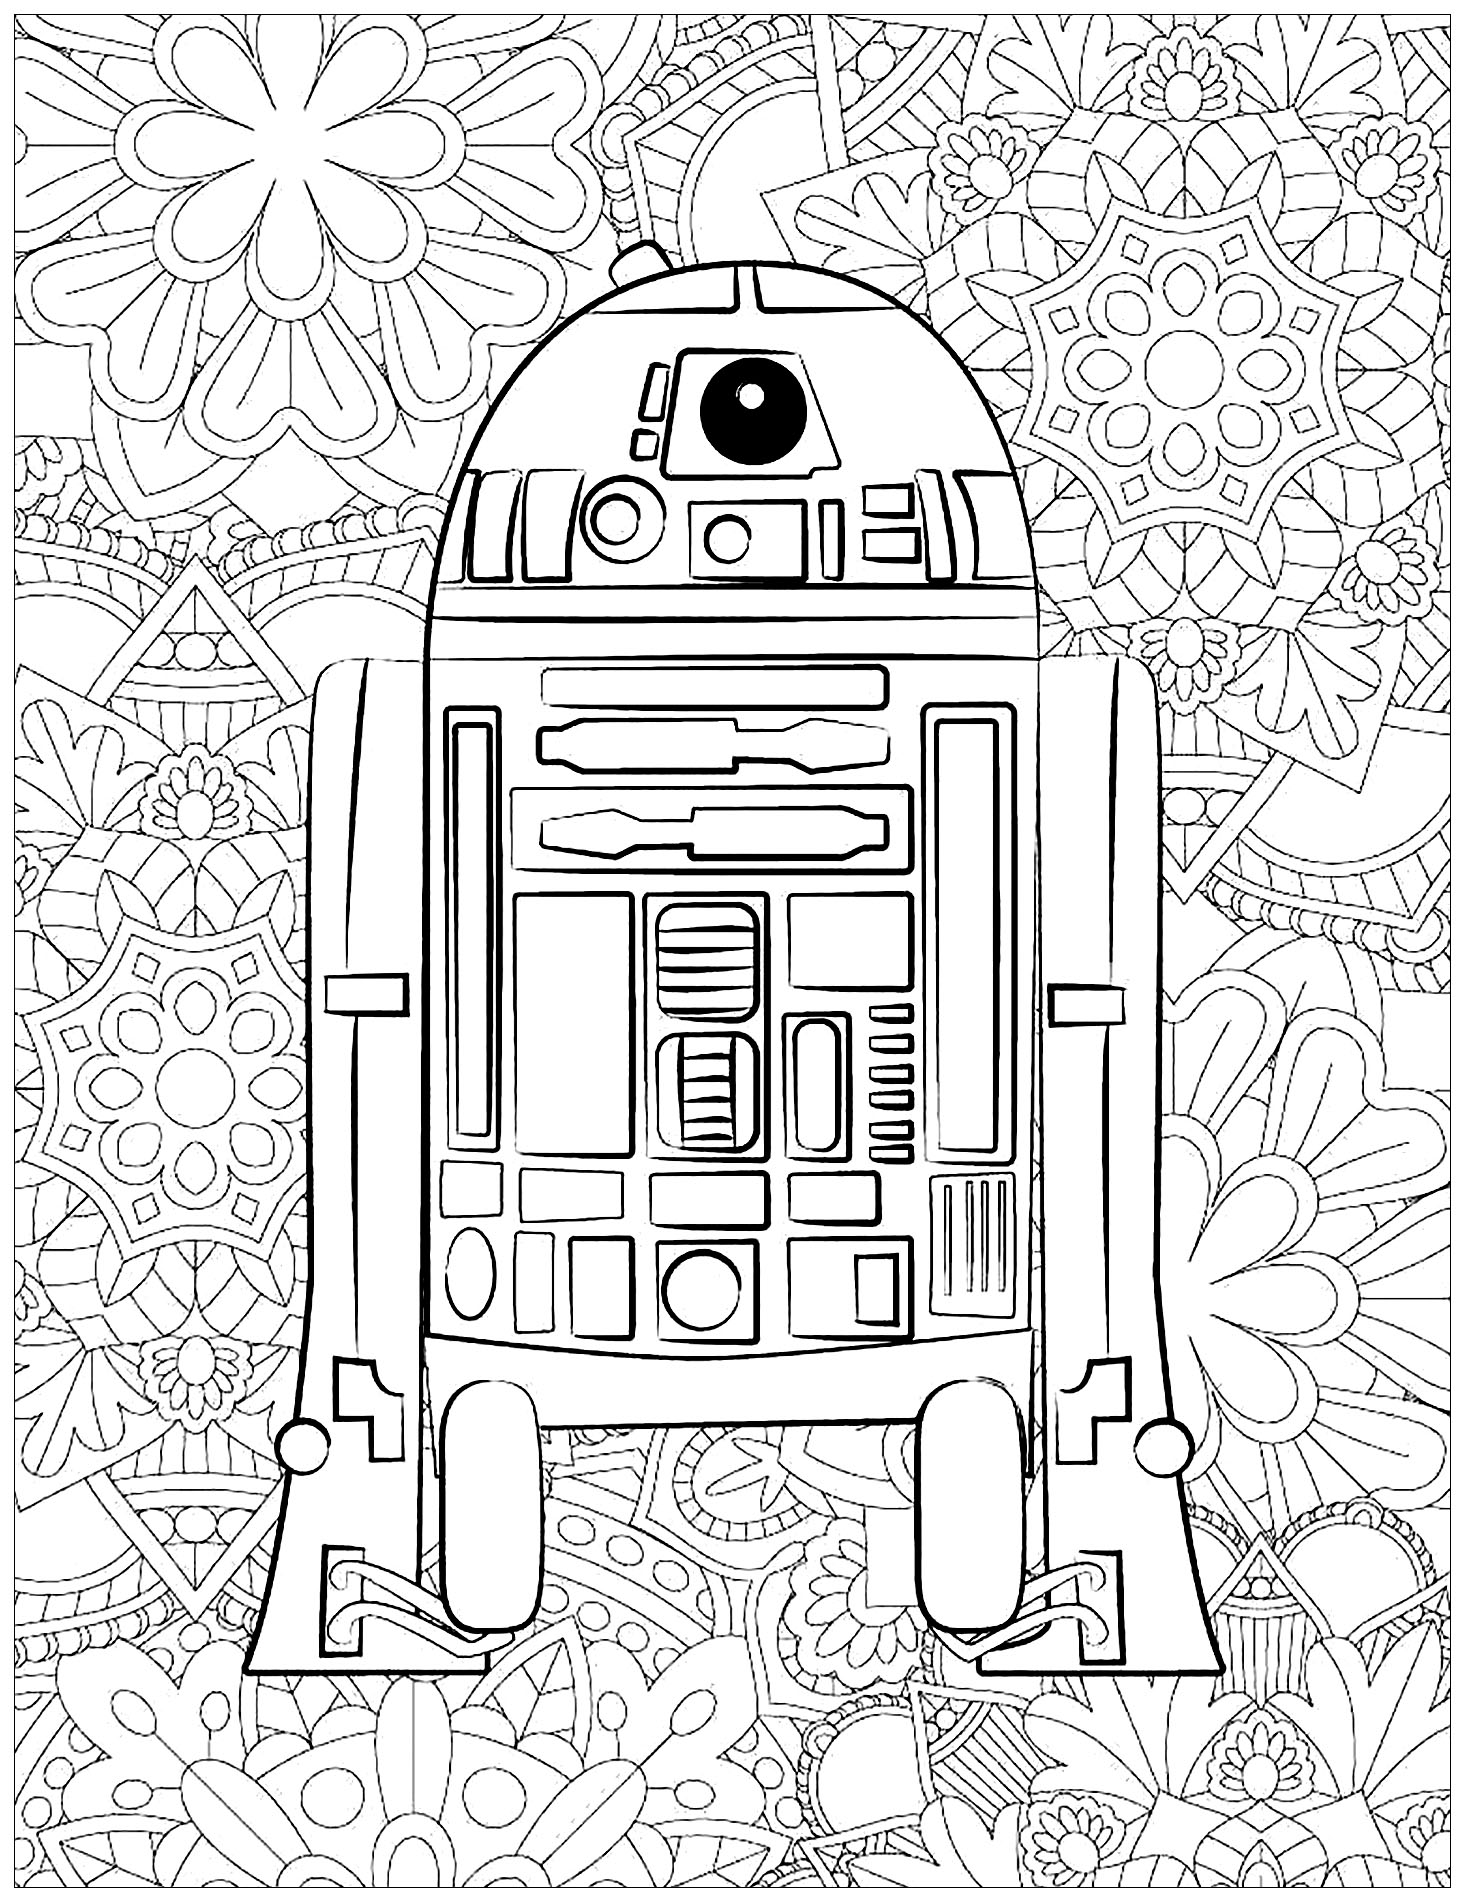 star wars free coloring pages star wars kylo ren and first order coloring page free wars star coloring pages